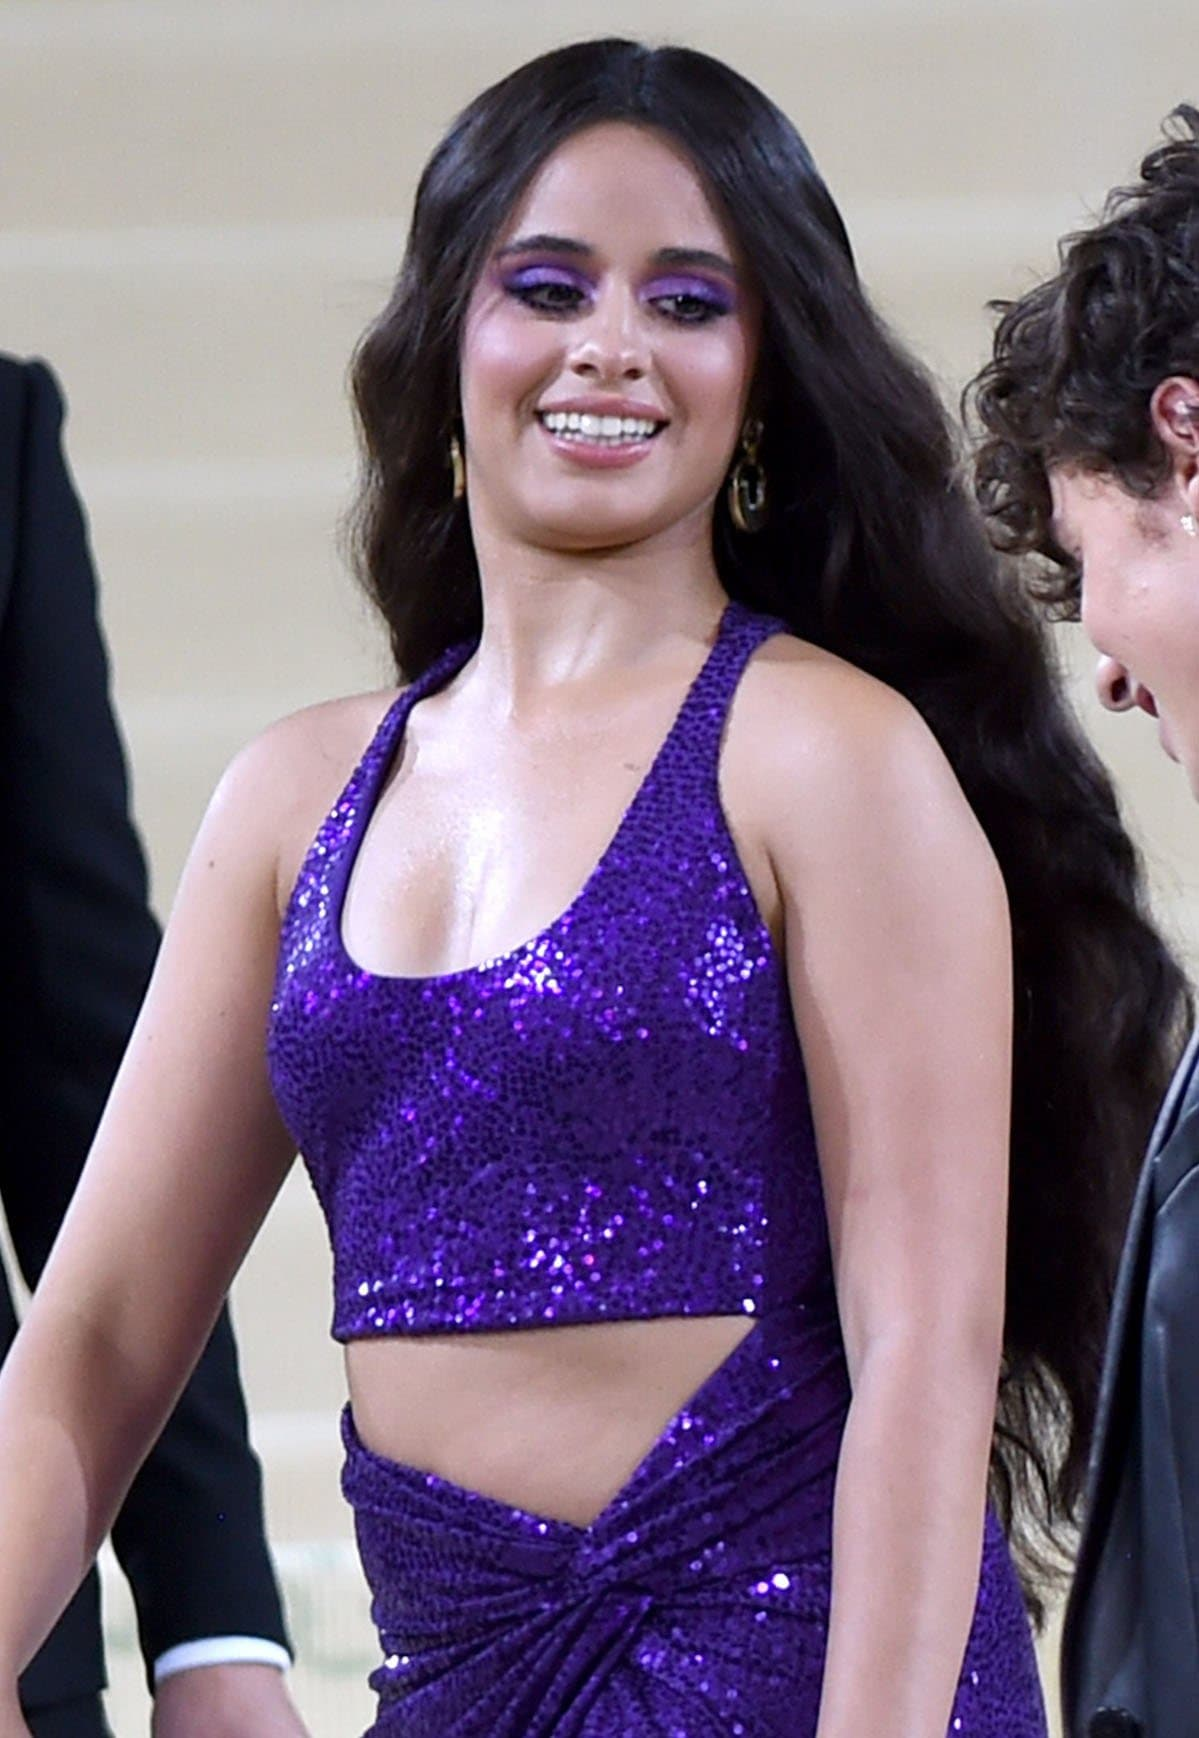 Camila Cabello matches her purple eyeshadow with her outfit and wears her long hair in thick waves